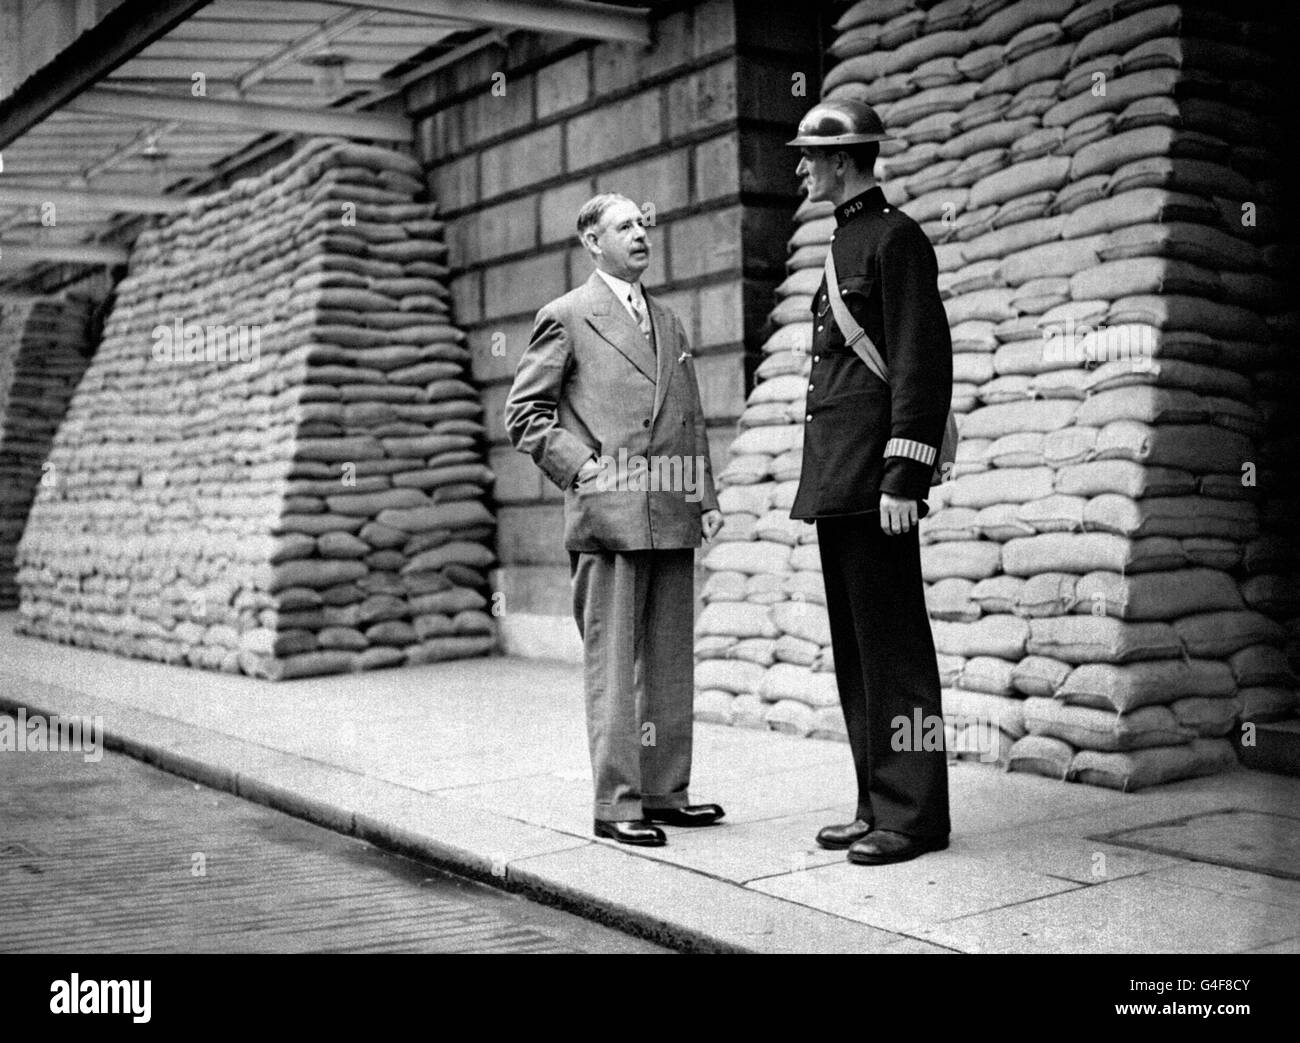 World War Two - British Empire - Home Front - Air Raid Precautions - London - 1939 - Stock Image